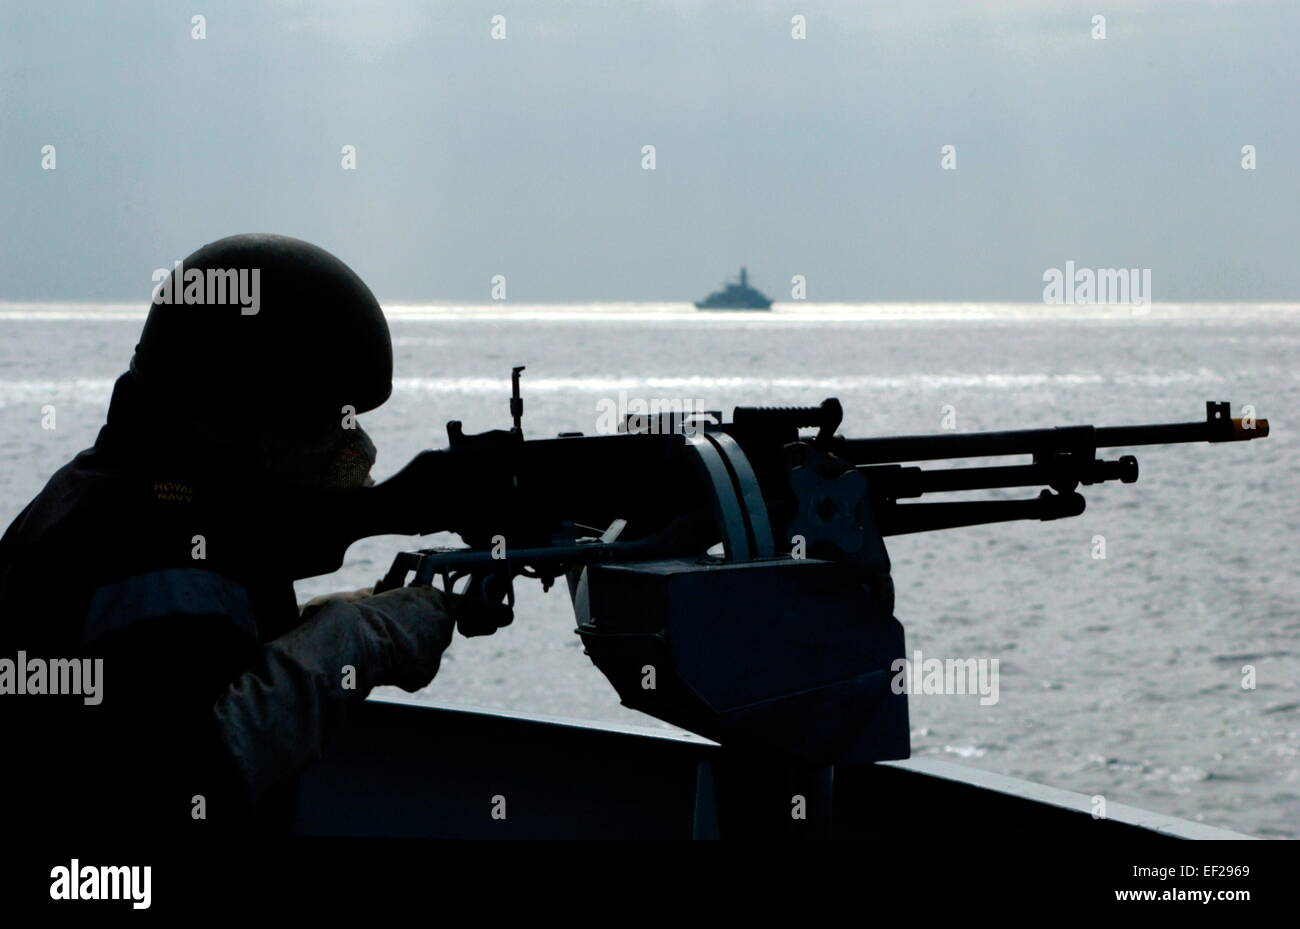 AJAXNETPHOTO - 2005 - ROYAL NAVY FOST TRAINING - A SAILOR ON THE BRIDGE OF THE FRIGATE HMS KENT ON THE DEFENSIVE - Stock Image